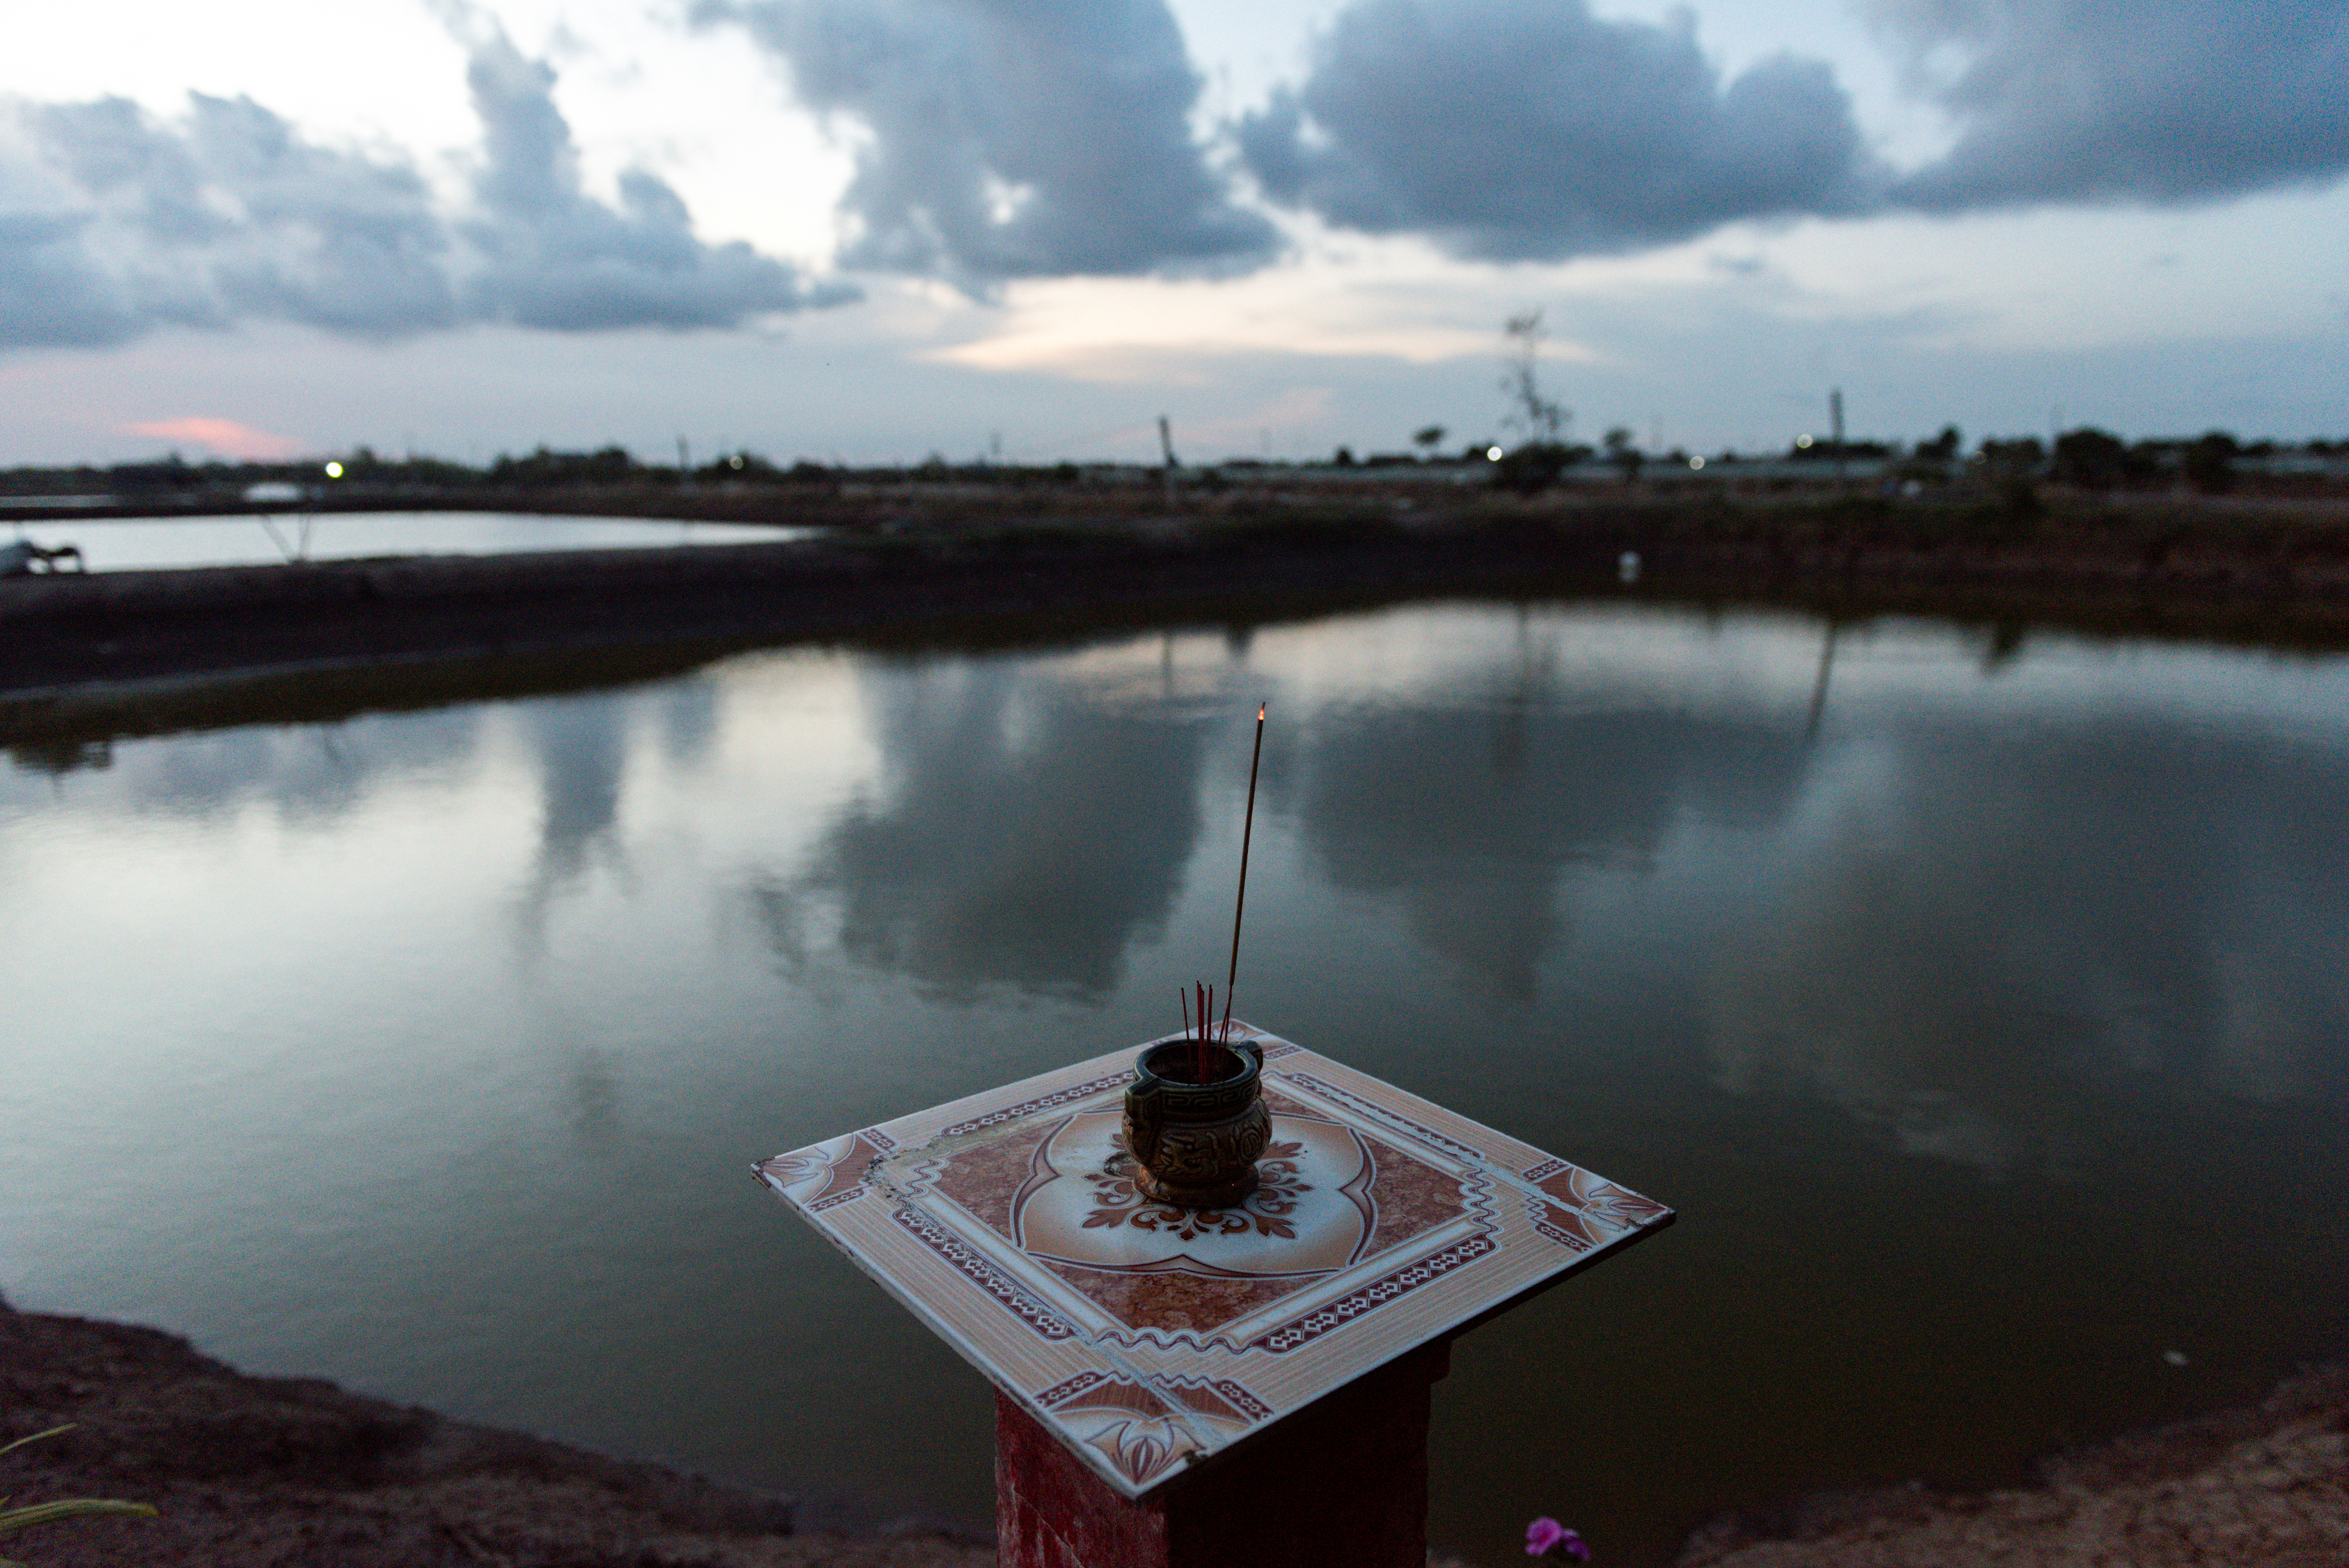 An altar is seen in front of a shrimp farm pool in Soc Trang province, Vietnam, May 1, 2021. Picture Taken May 1, 2021. REUTERS/Thanh Hue